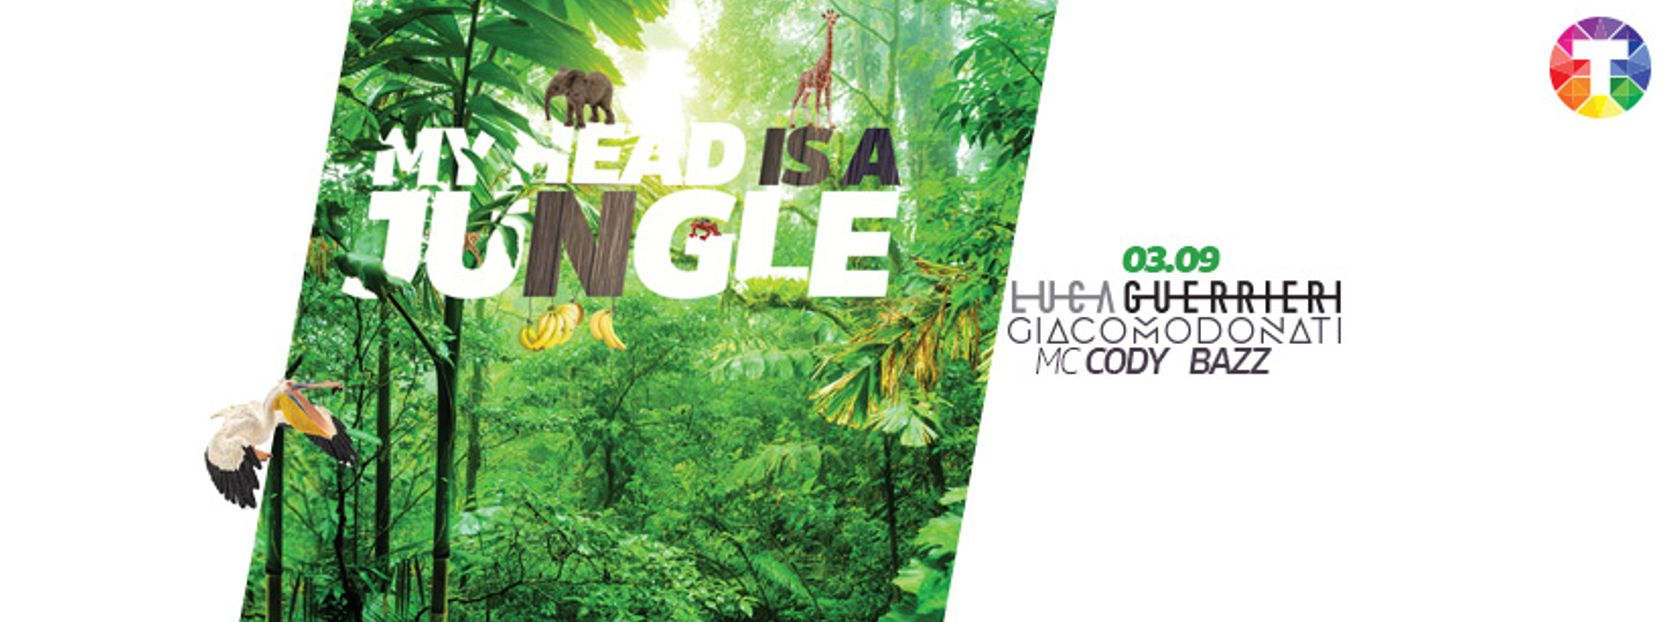 - My Head Is A Jungle #jungleparty